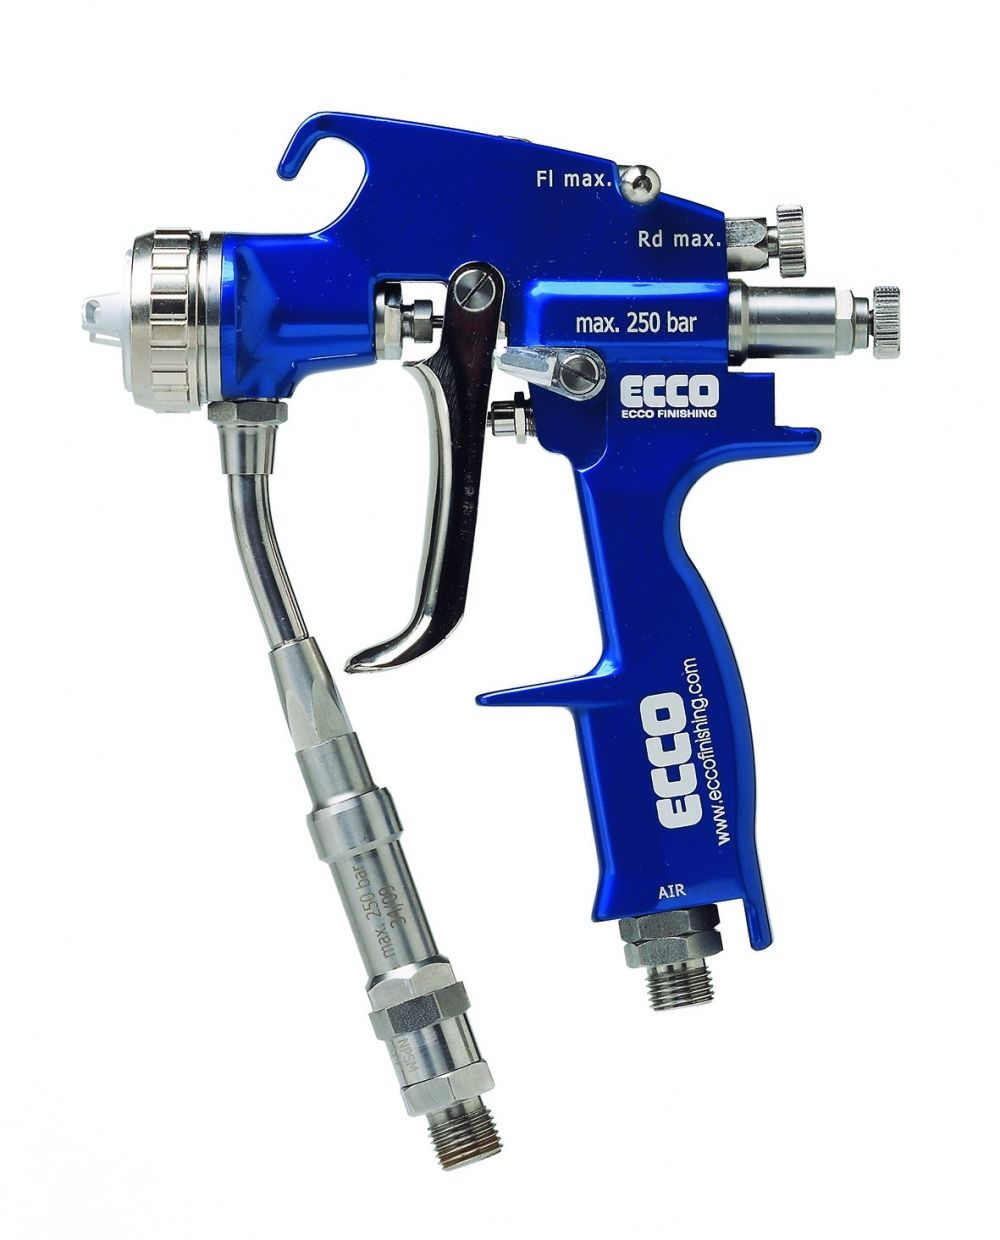 Electric Spray Paint Gun For Cars